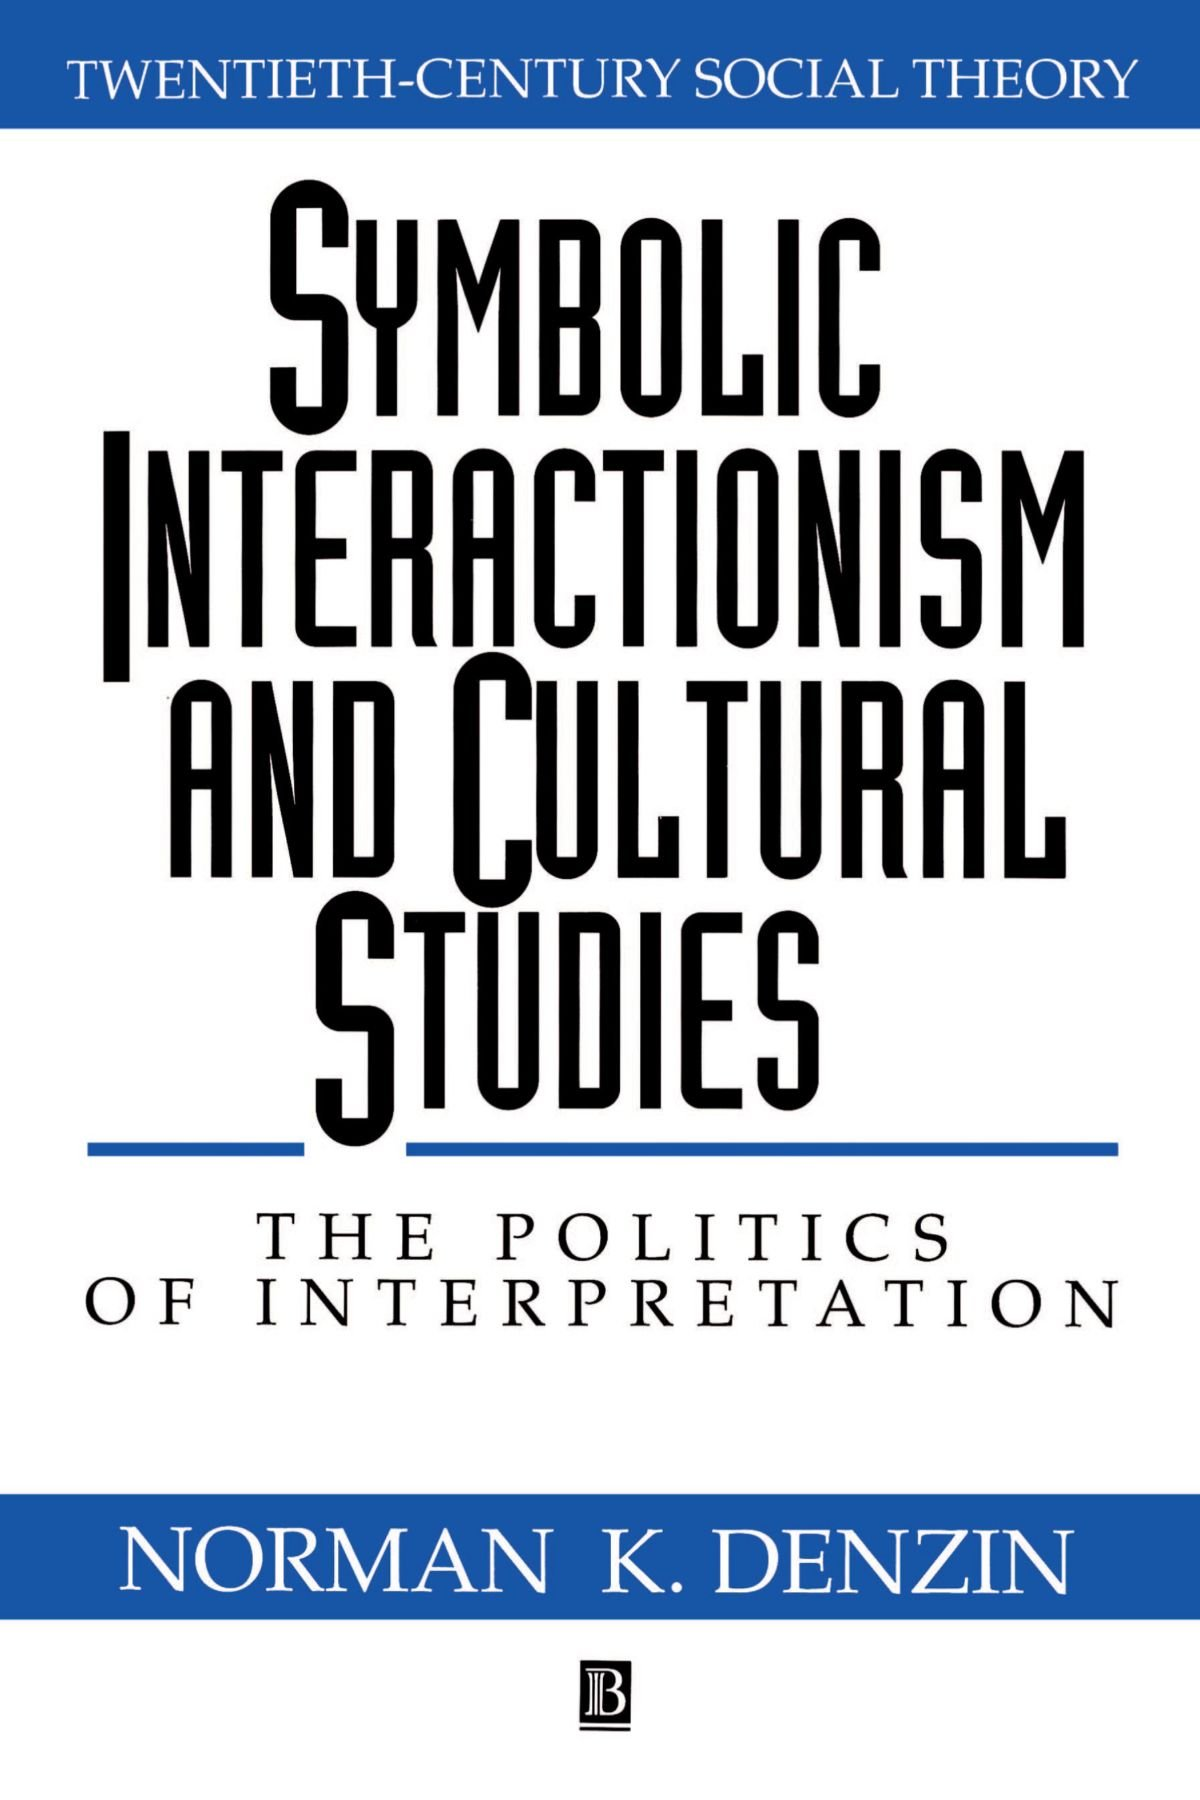 Symbolic interactionism and cultural studies the politics of symbolic interactionism and cultural studies the politics of interpretation twentieth century social theory amazon norman k denzin biocorpaavc Choice Image